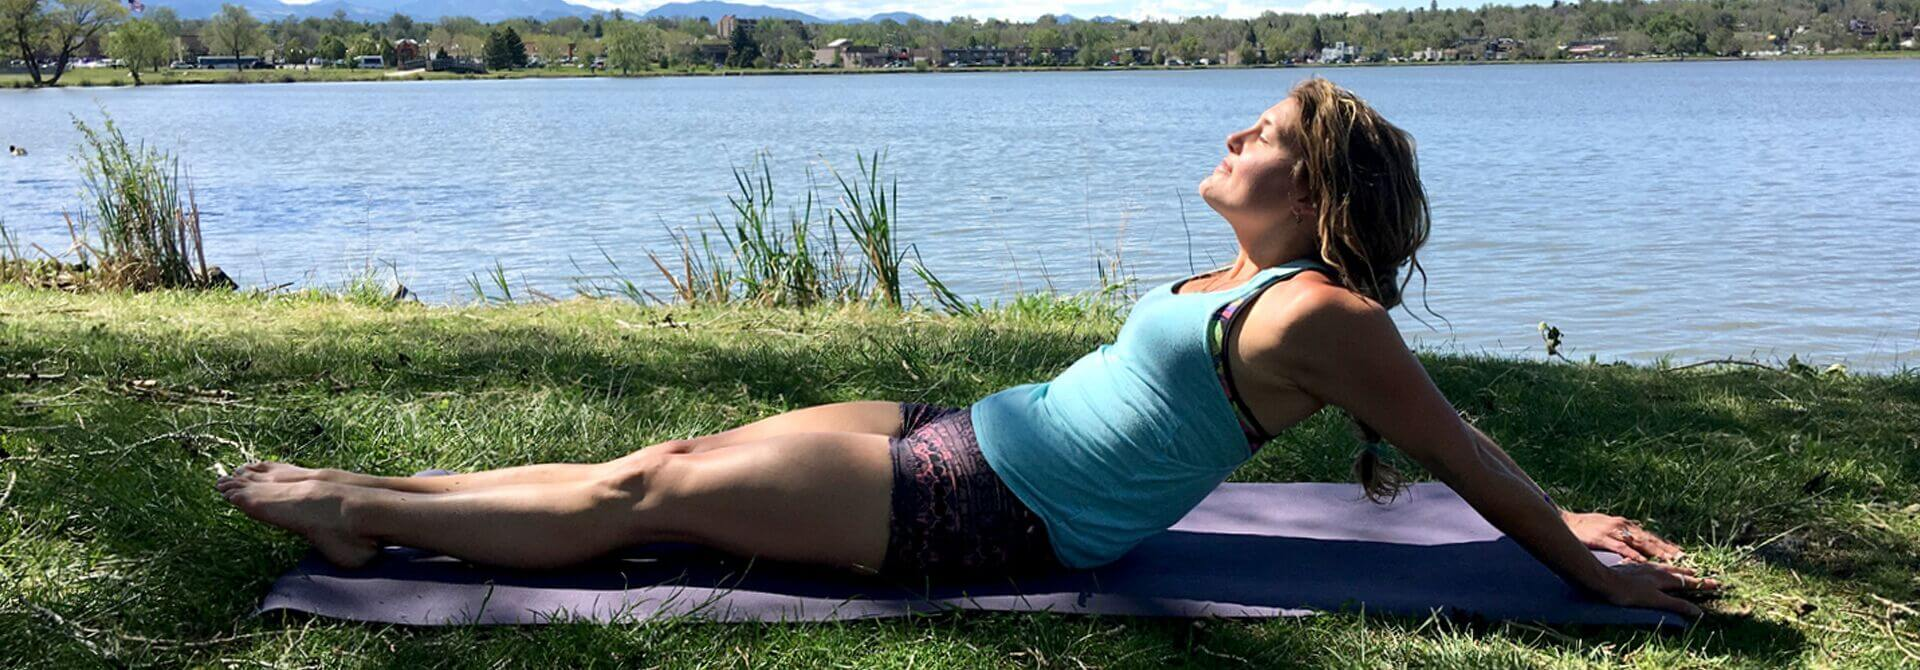 GymnasticBodies female athlete relaxes in the park while stretching her shoulders, with a shoulder extension stretch.